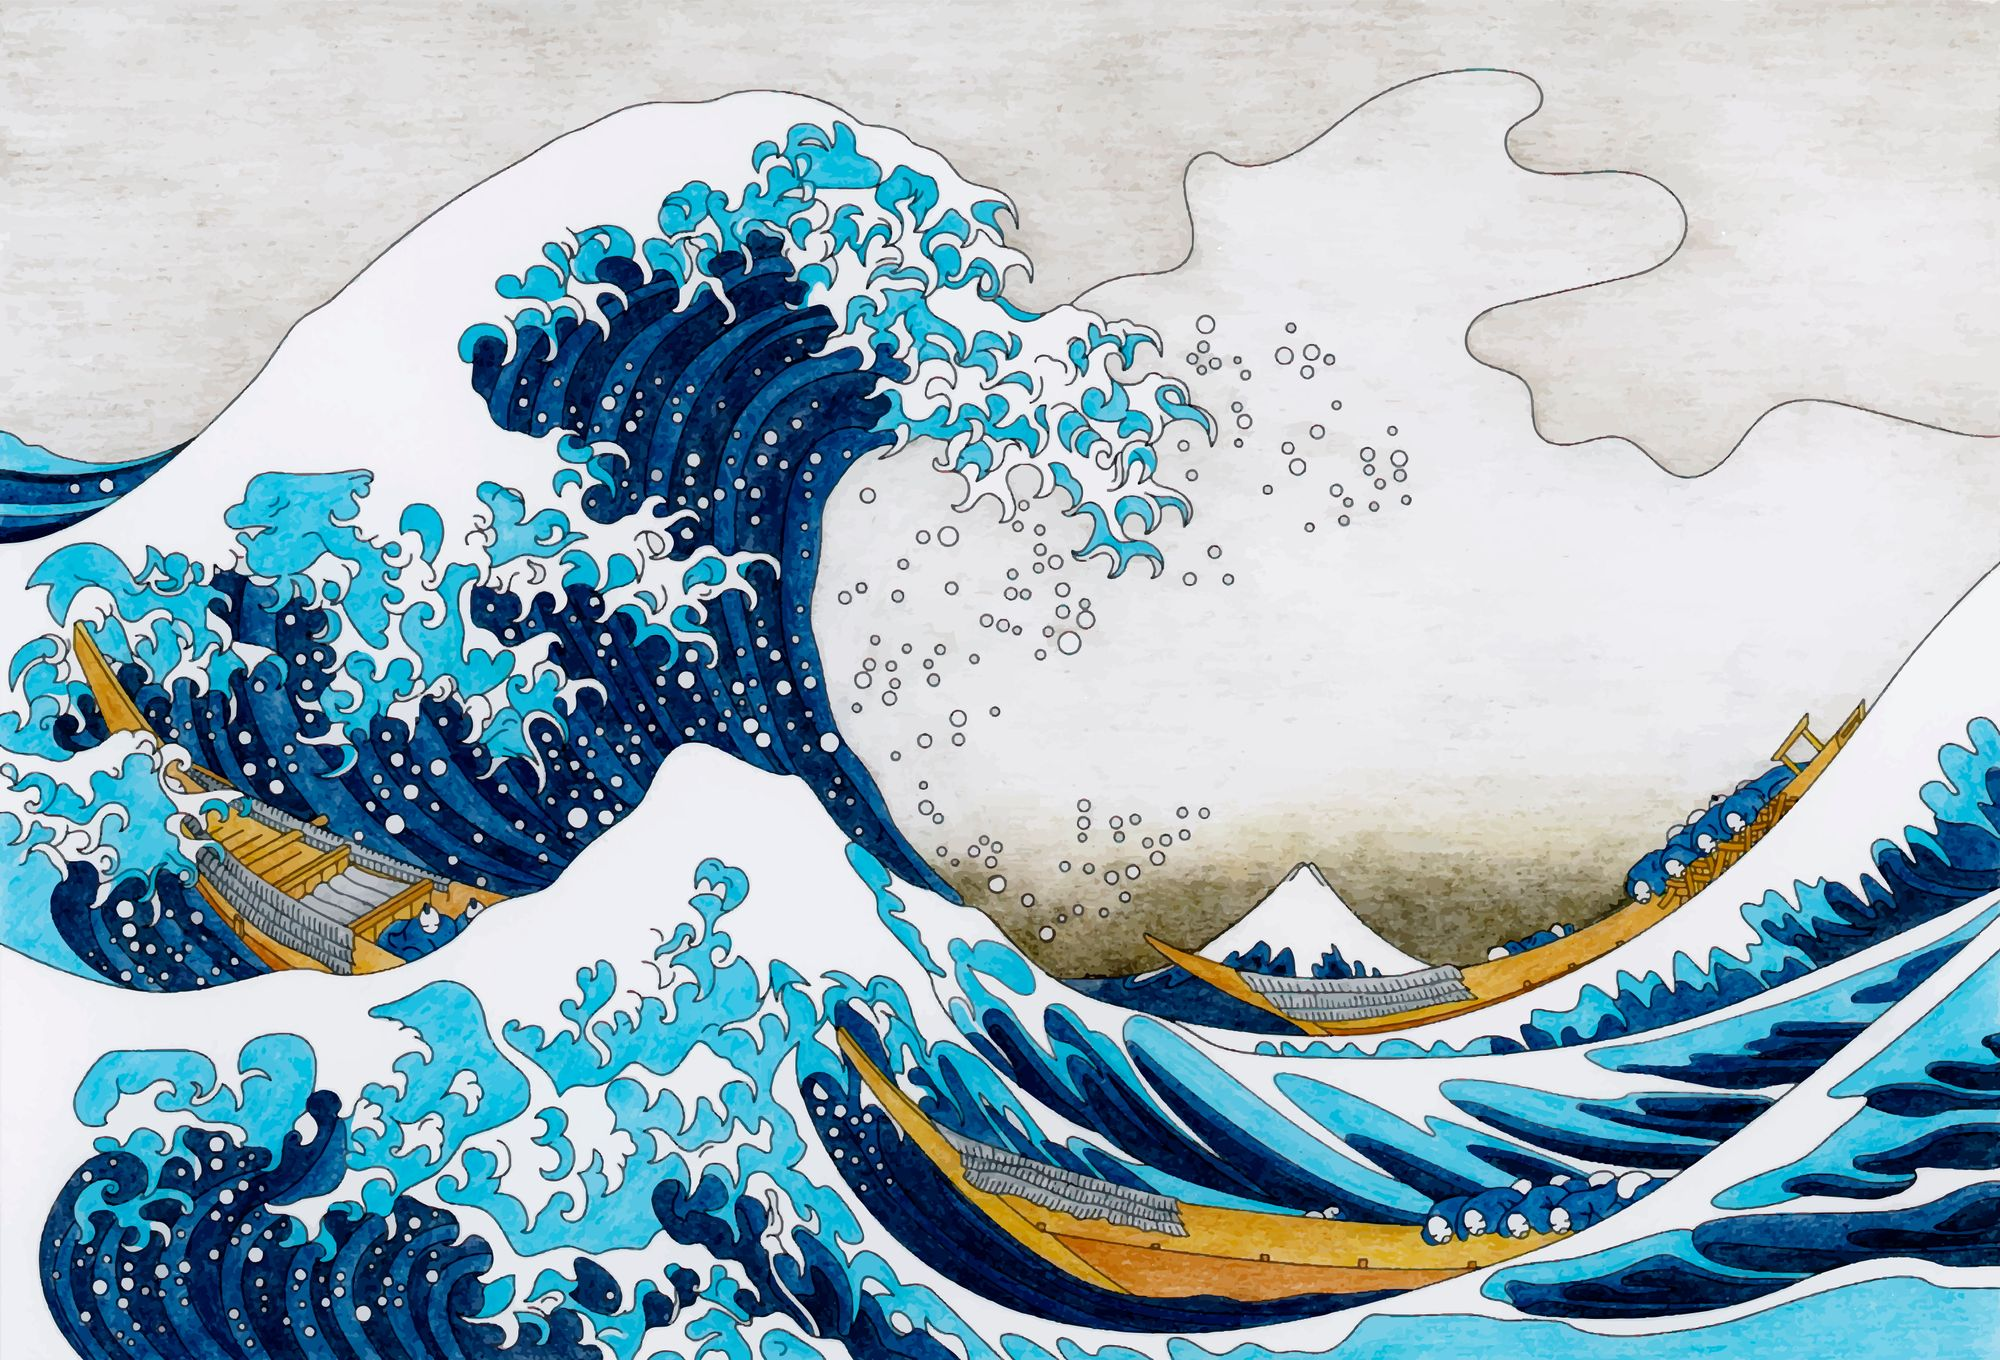 The-Great-Wave-of-Kanagawa--1829-1833--by-Katsushika-Hokusai-image-from-rawpixel-id-404633-jpeg